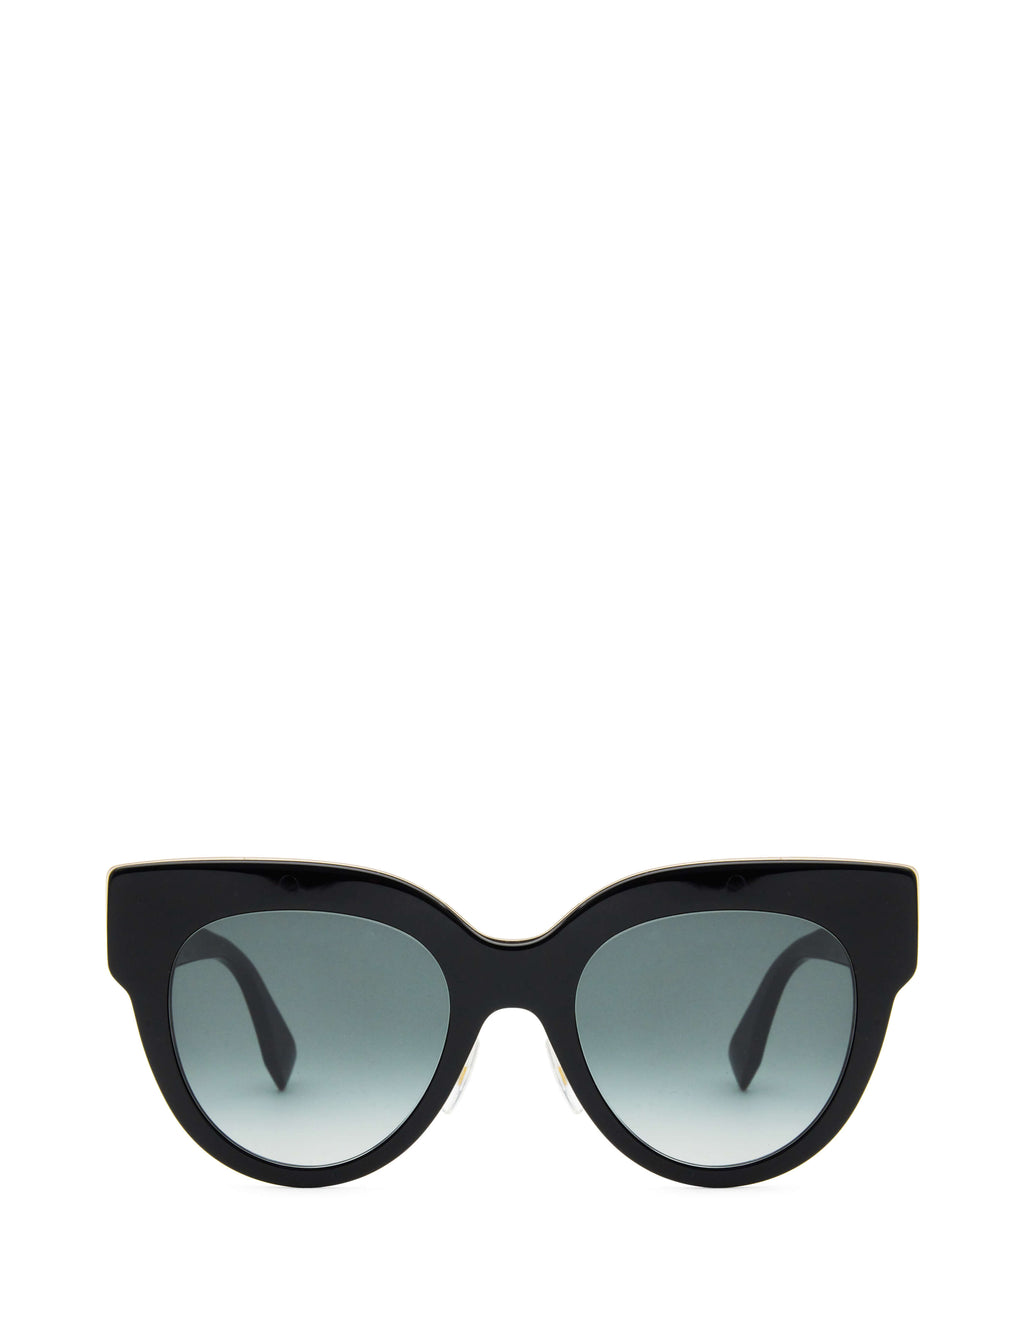 Fendi Eyewear Women's Giulio Fashion Black F is Fendi Sunglasses FF0360GS807